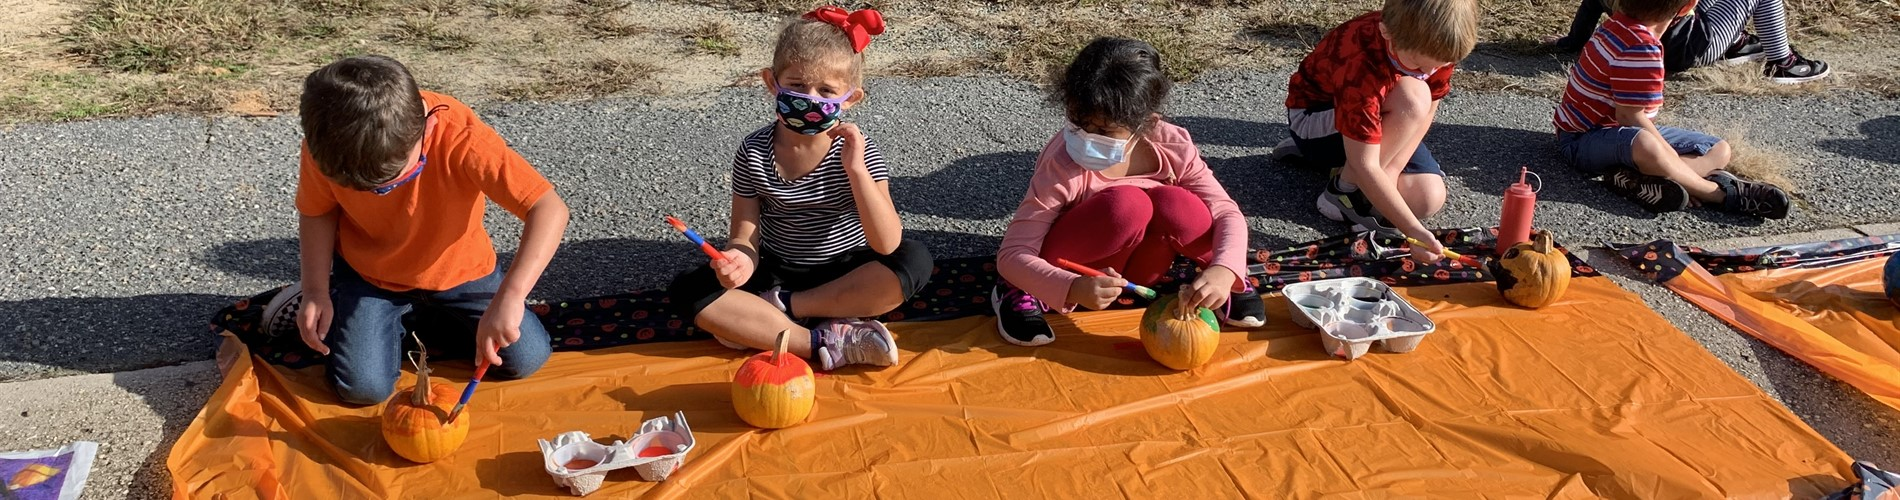 Mackey-Thompson students painting small pumpkins on the pavement with an orange plastic tablecloth underneath them.